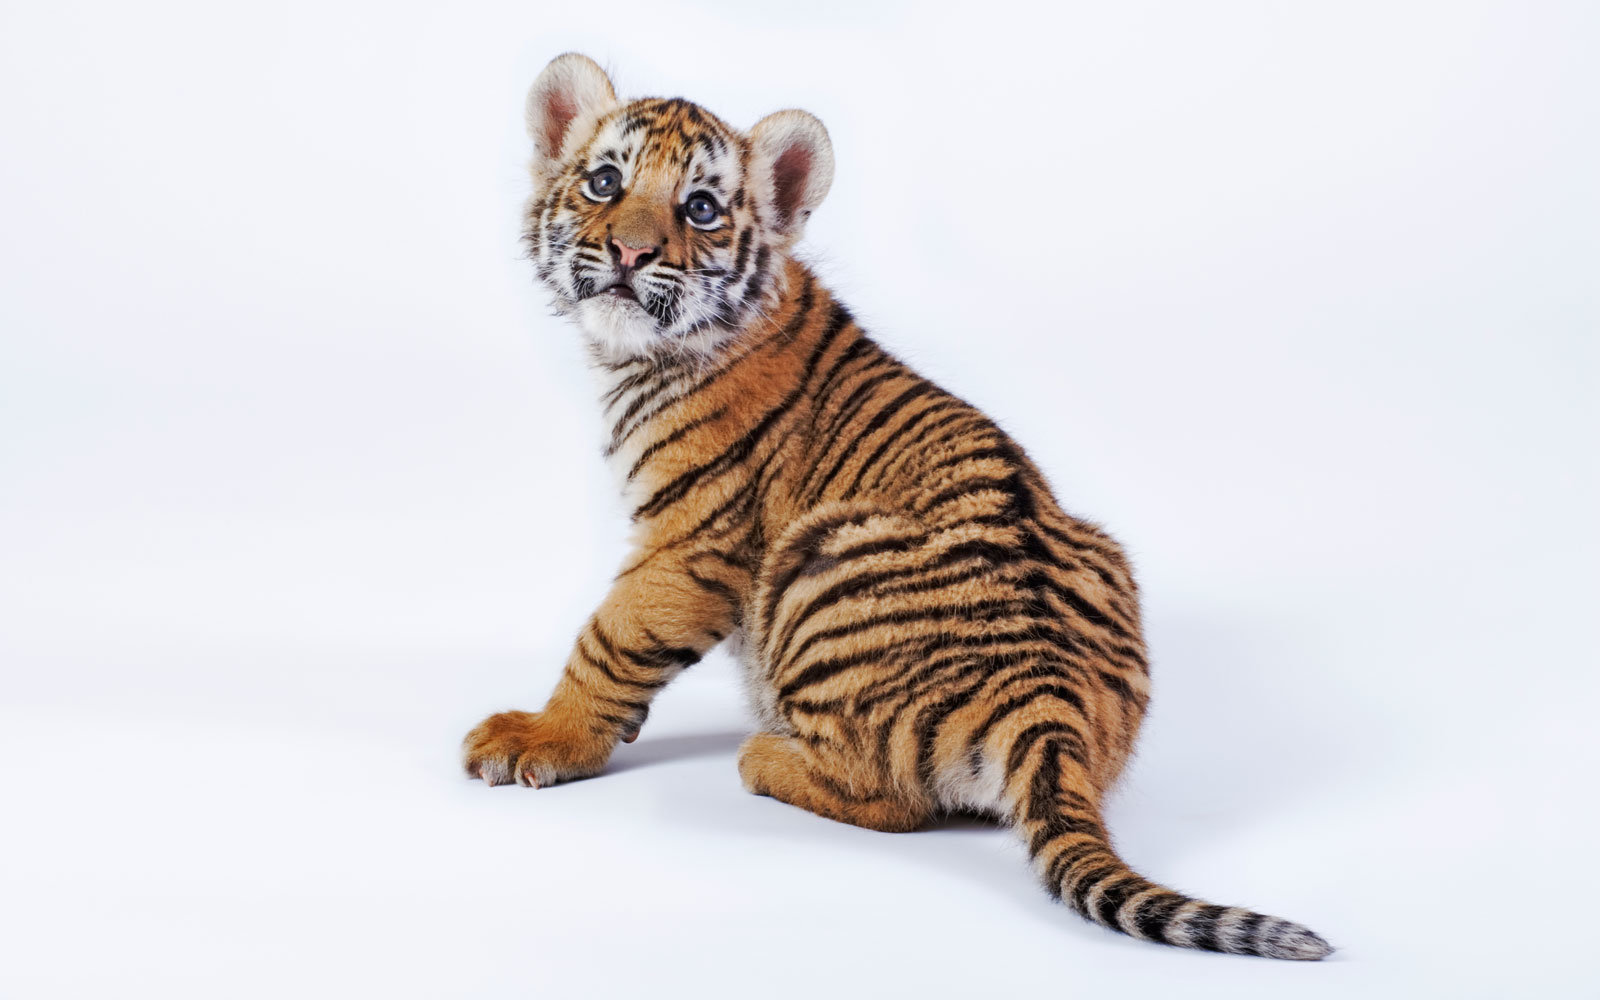 Tiger Cub Confiscated at Border Crossing